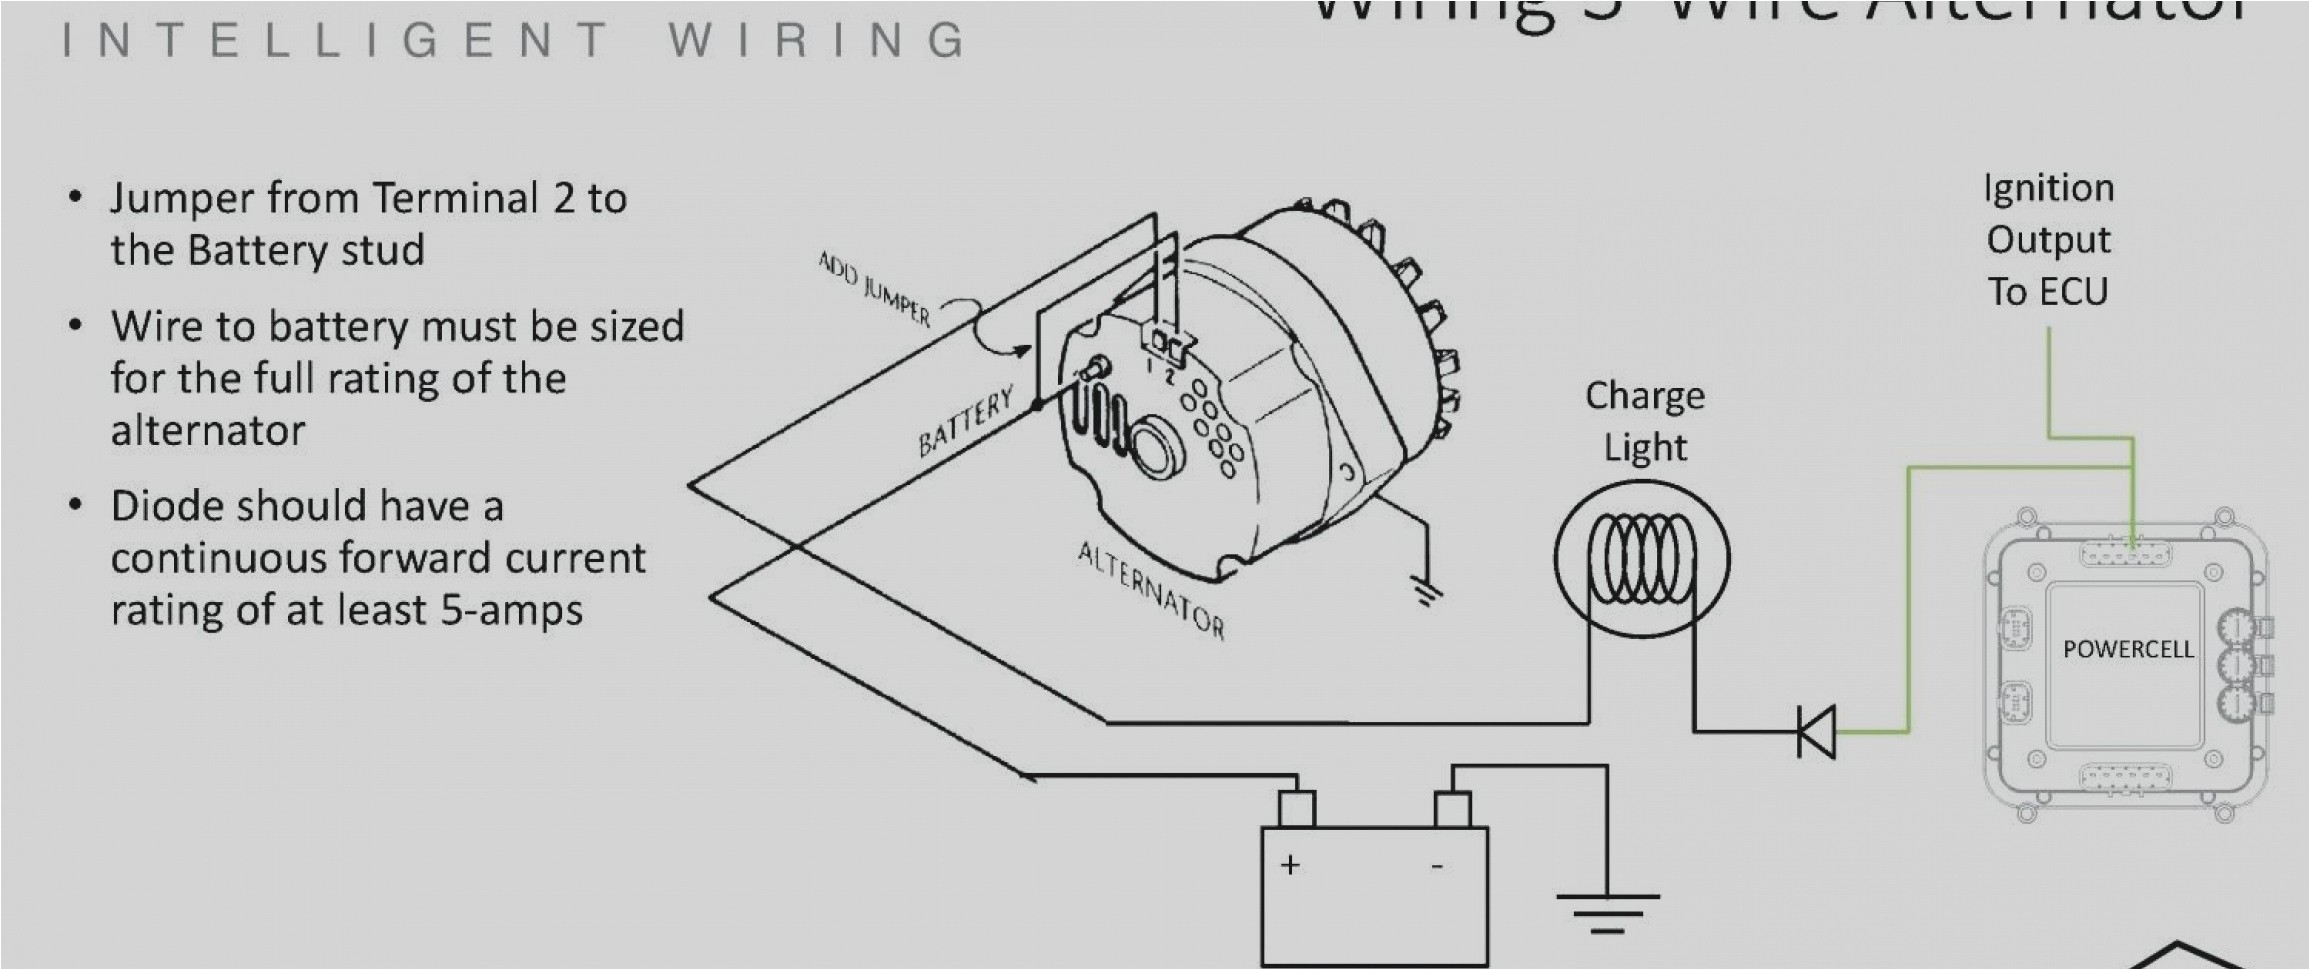 mack 3 wire alternator diagram wiring diagram used chevy 3 wire alternator wiring manual e book